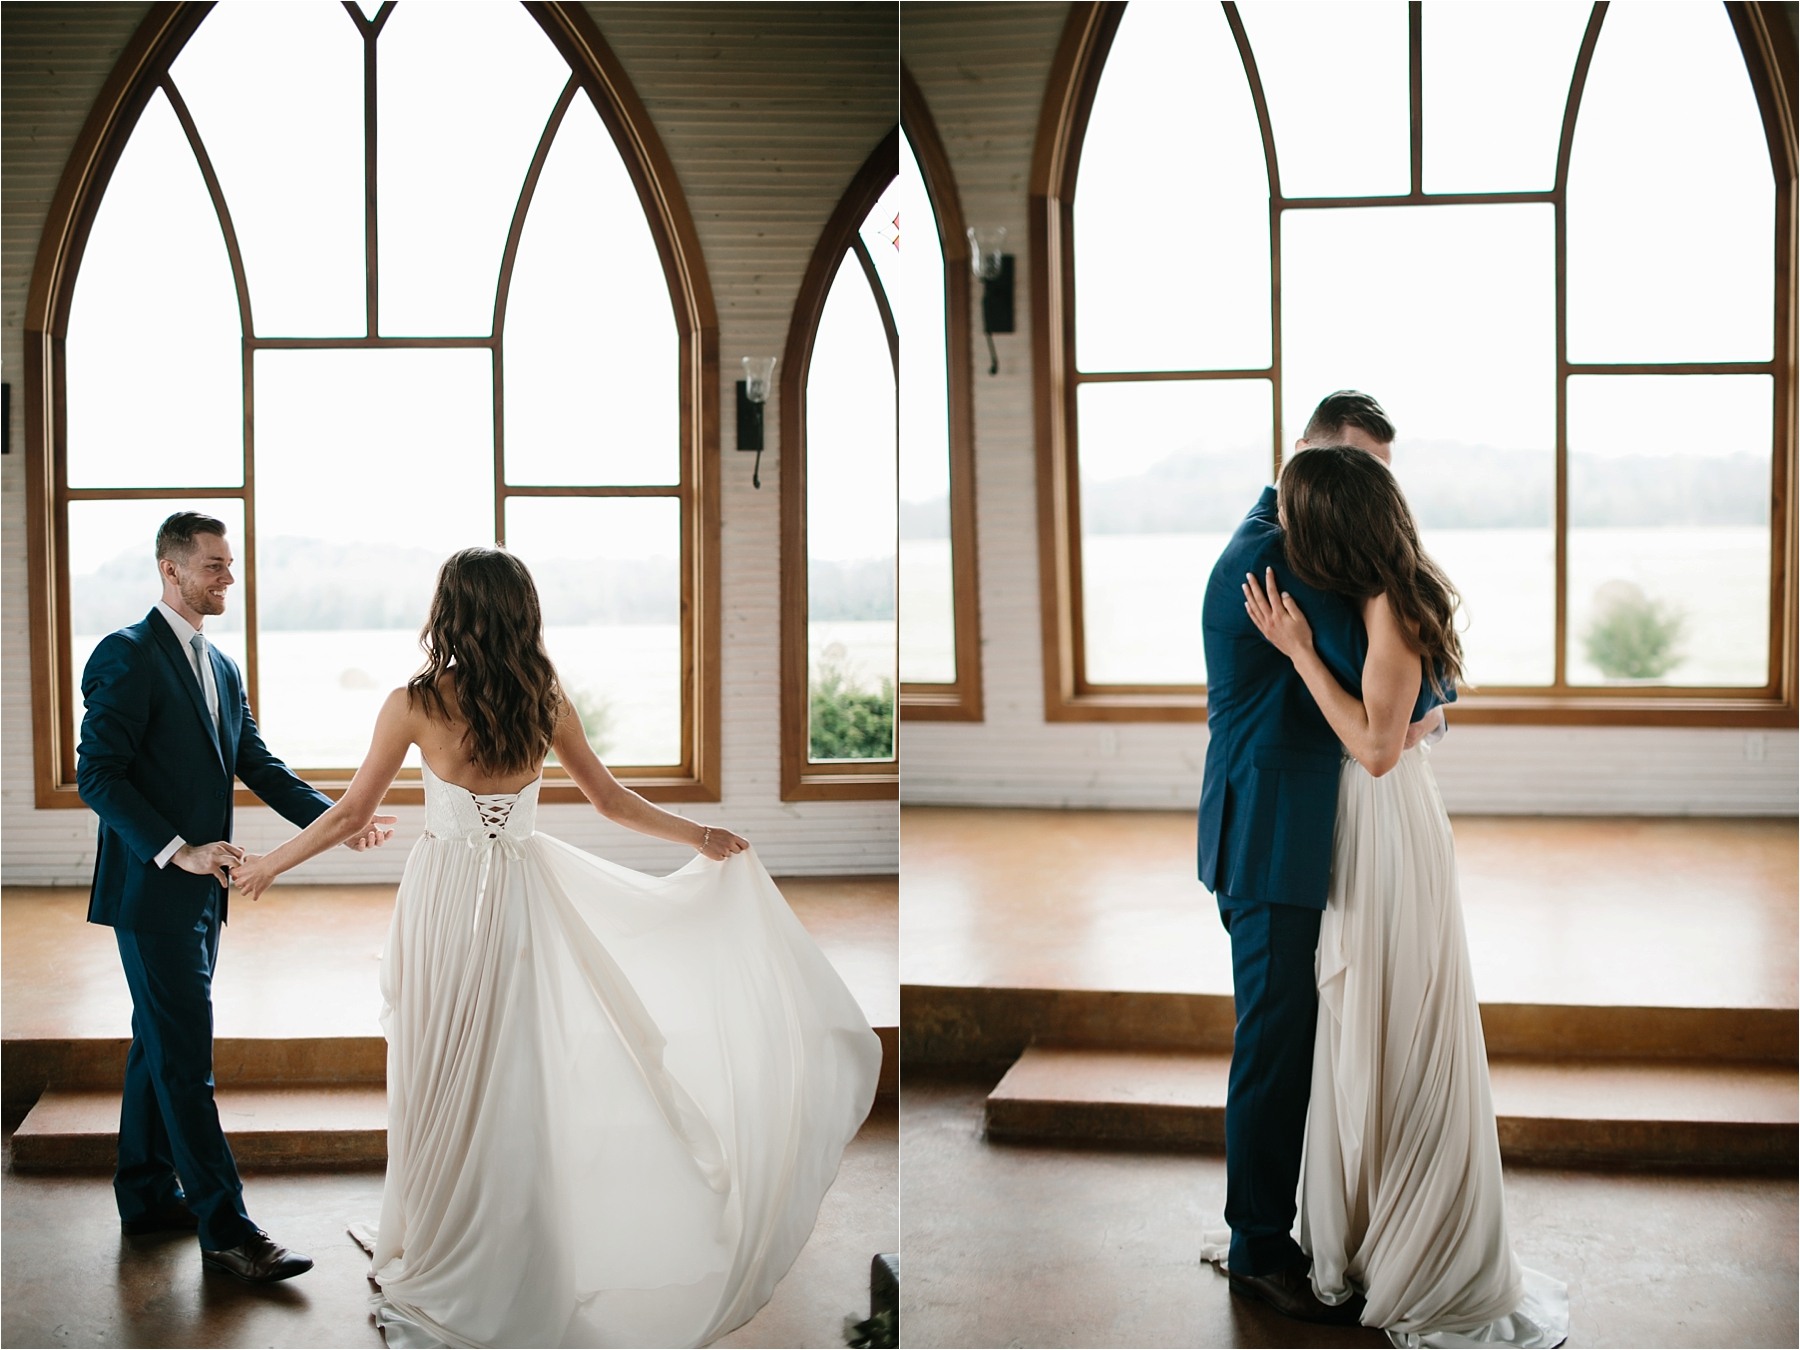 Lauren + Matt __ an intimate, emotional, blush pink, navy blue, and greenery toned wedding accents at the Brooks at Weatherford by North Texas Wedding Photographer Rachel Meagan Photography041